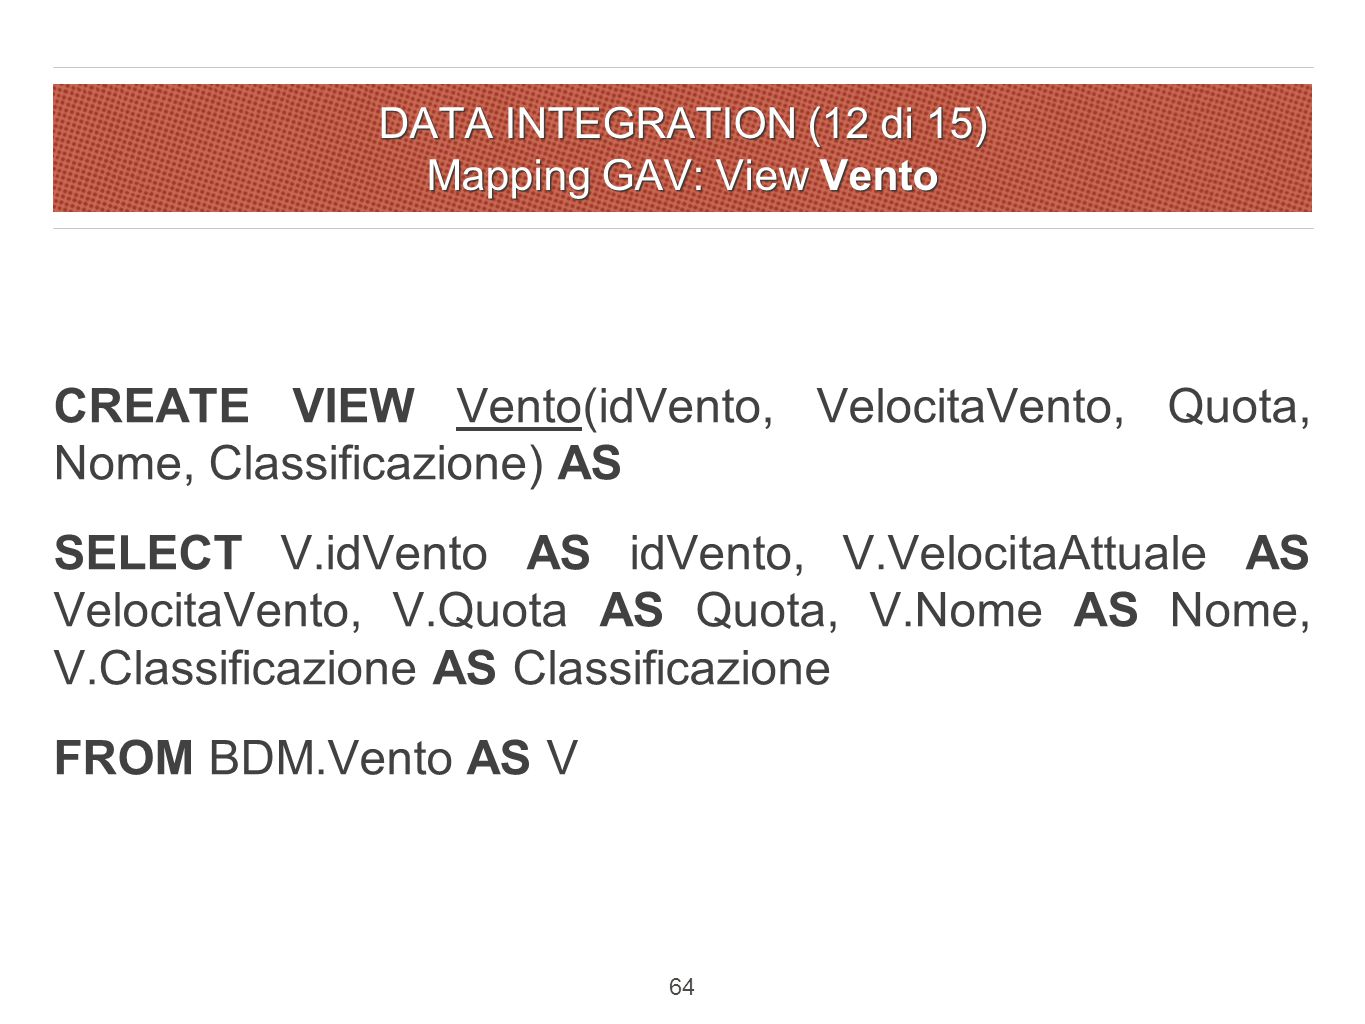 DATA INTEGRATION (12 di 15) Mapping GAV: View Vento CREATE VIEW Vento(idVento, VelocitaVento, Quota, Nome, Classificazione) AS SELECT V.idVento AS idVento, V.VelocitaAttuale AS VelocitaVento, V.Quota AS Quota, V.Nome AS Nome, V.Classificazione AS Classificazione FROM BDM.Vento AS V 64